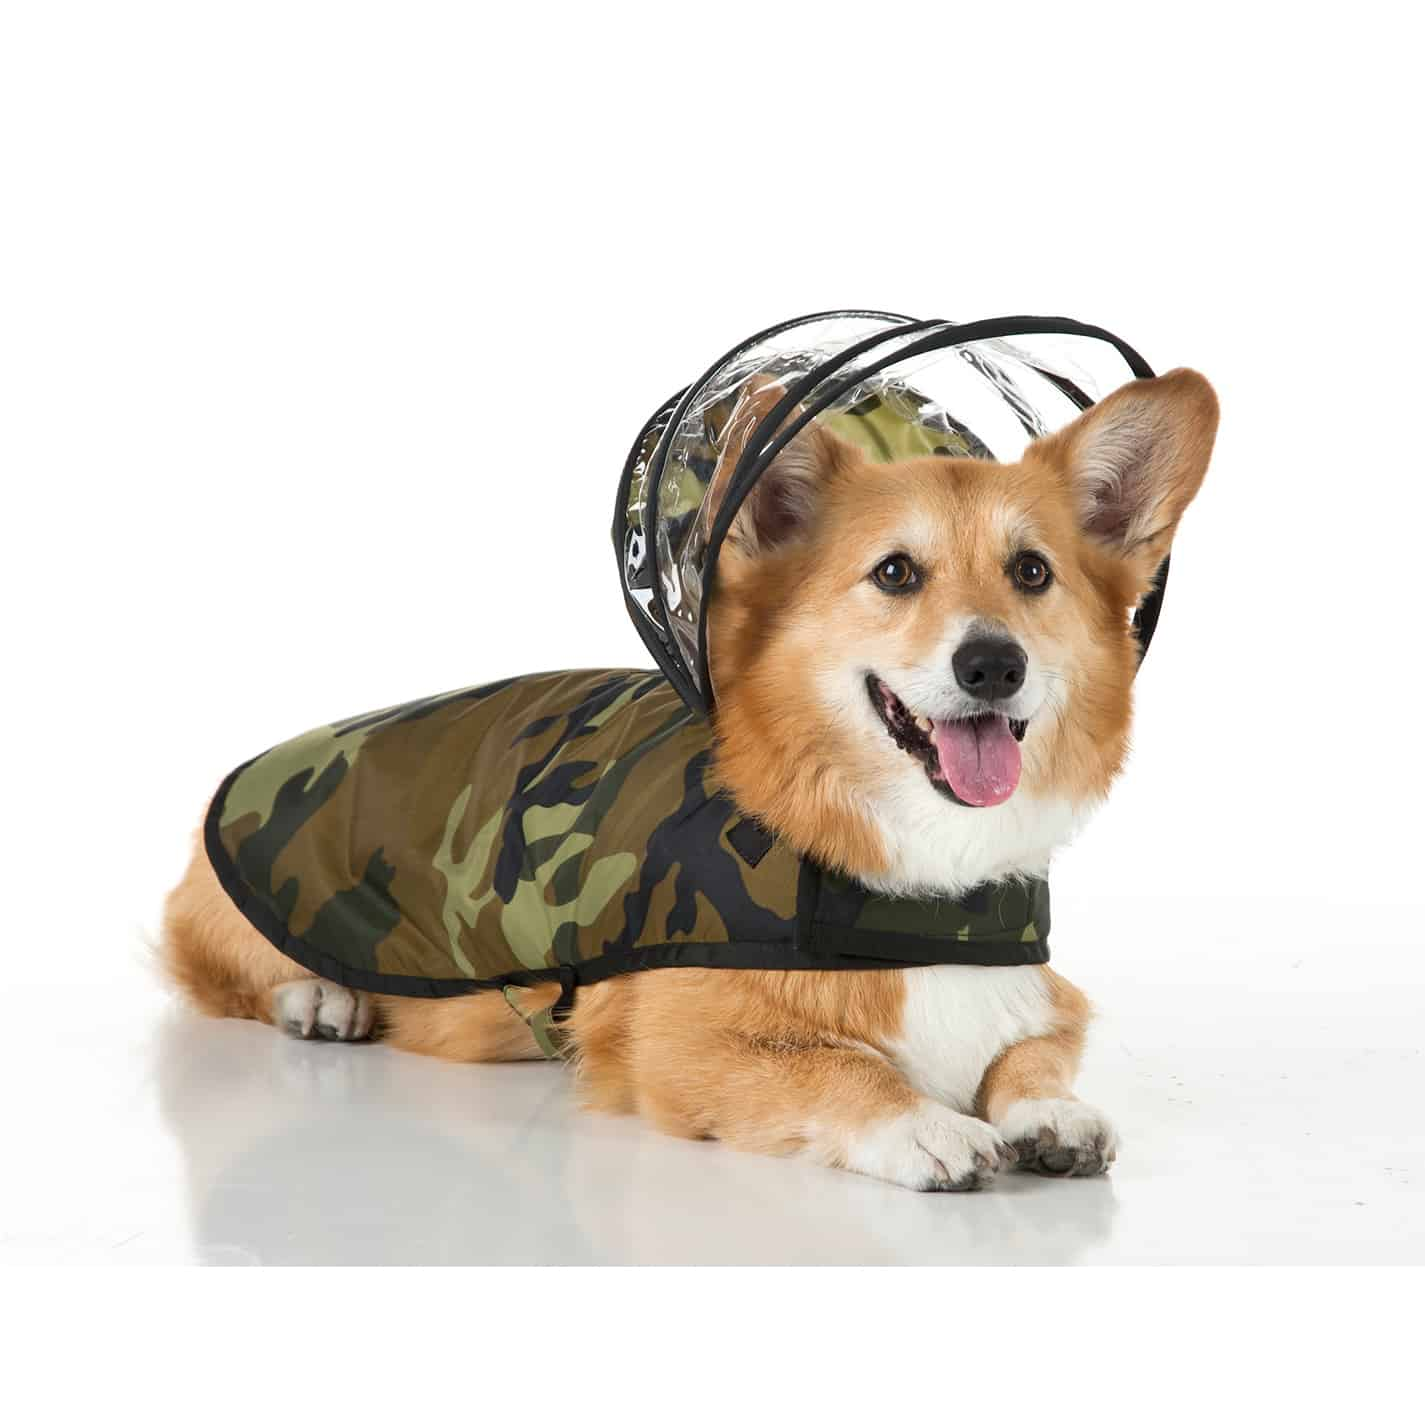 Push Pushi Rainbow Dog Raincoat Doglover Gift Army Green Camo Military Dog Costume